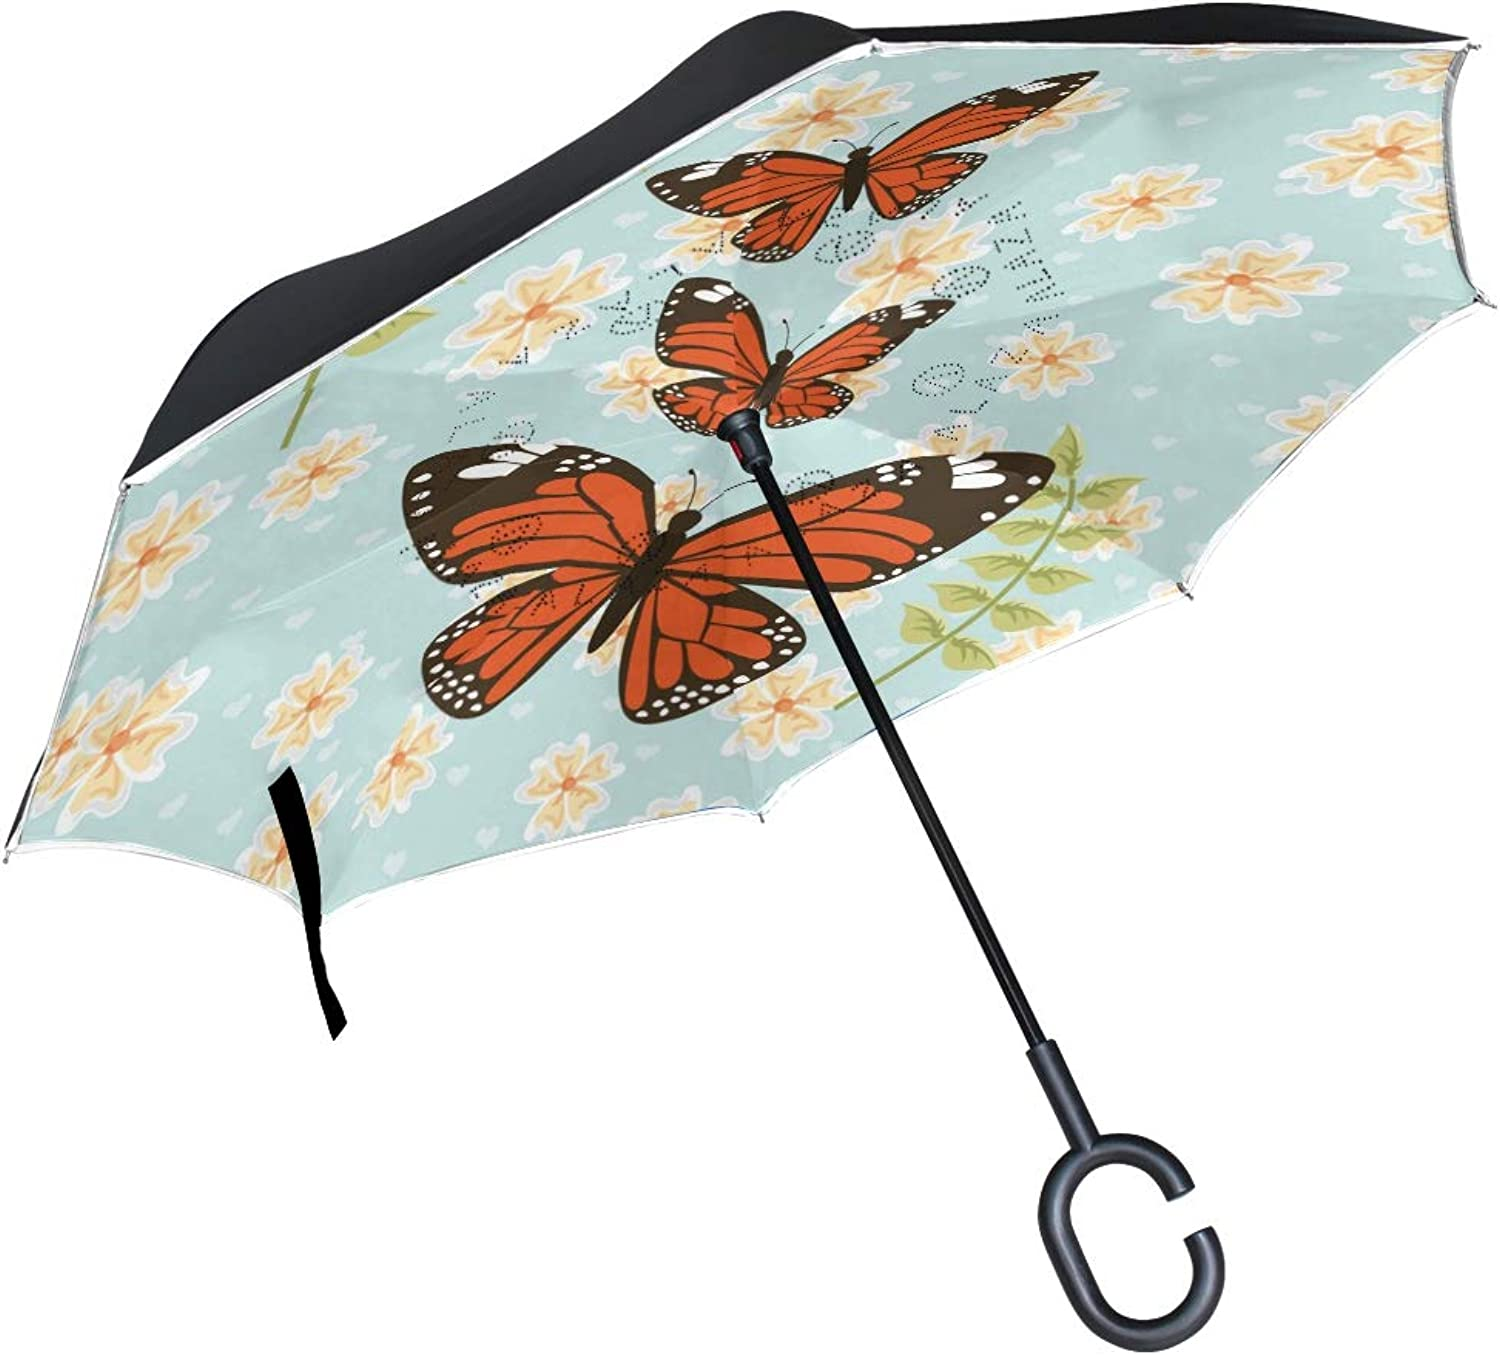 Ingreened Umbrella Double Layer Reverse Umbrella Waterproof Windproof UV Predection Straight Umbrella with CShaped Handle Daisy Flower with Butterfly Digital Printing for Car Rain Outdoor Use